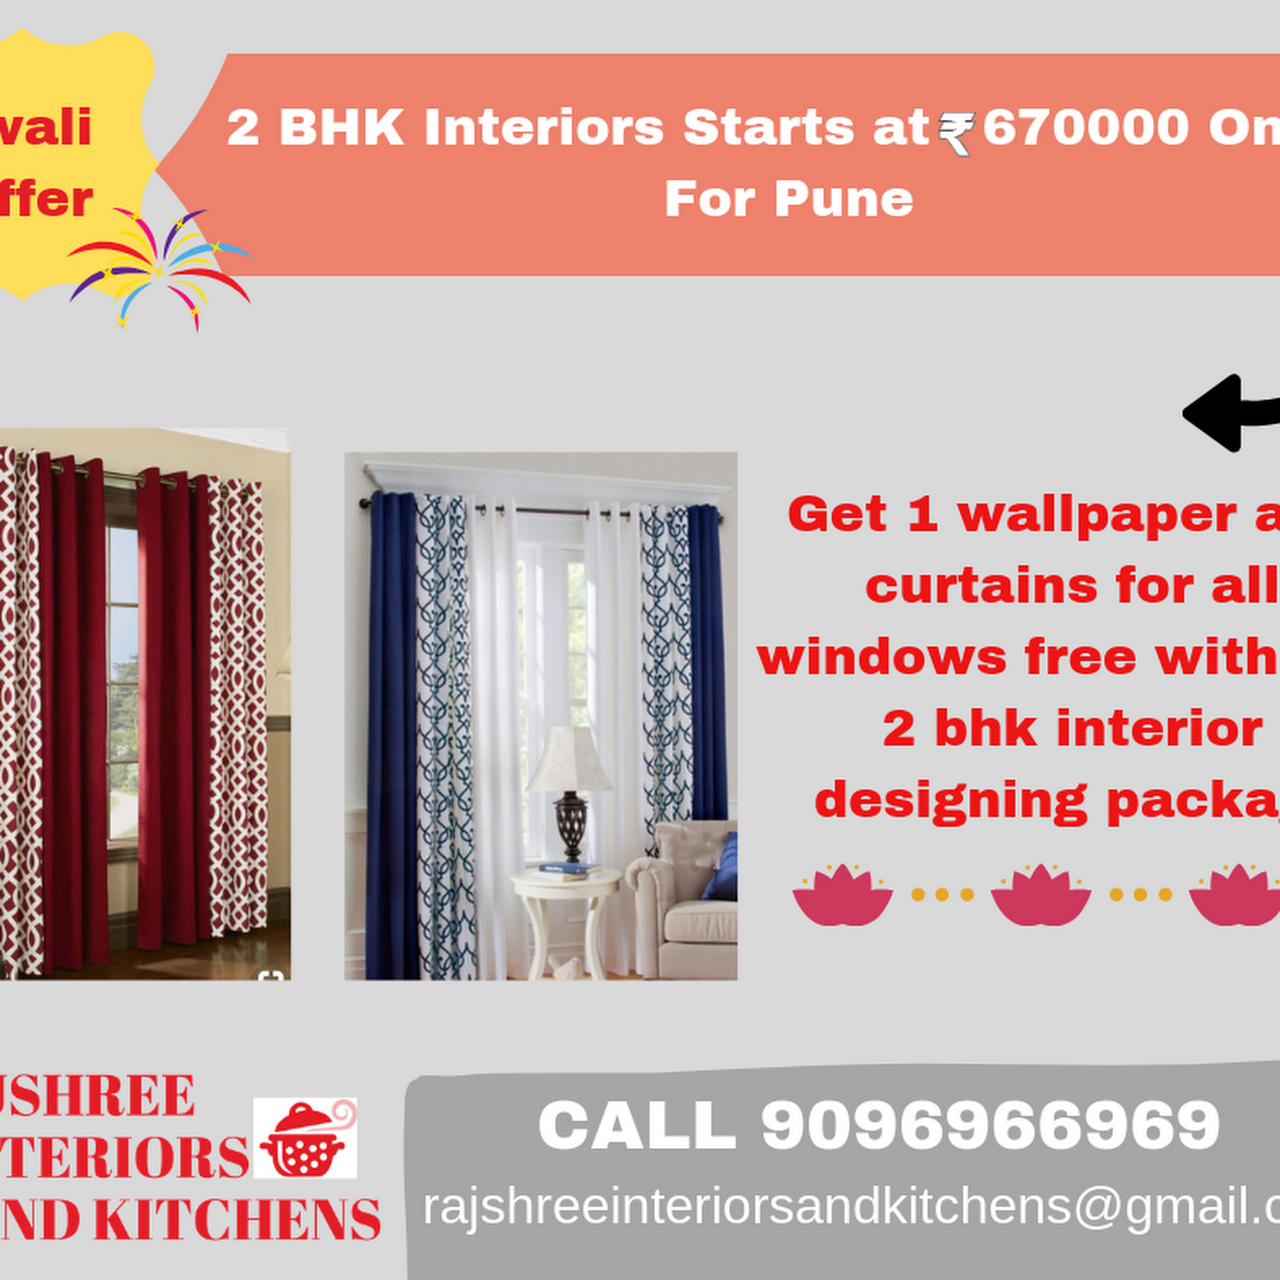 Rajshree Interiors And Kitchens We Make Your Dream Home And Office Shop Liveable